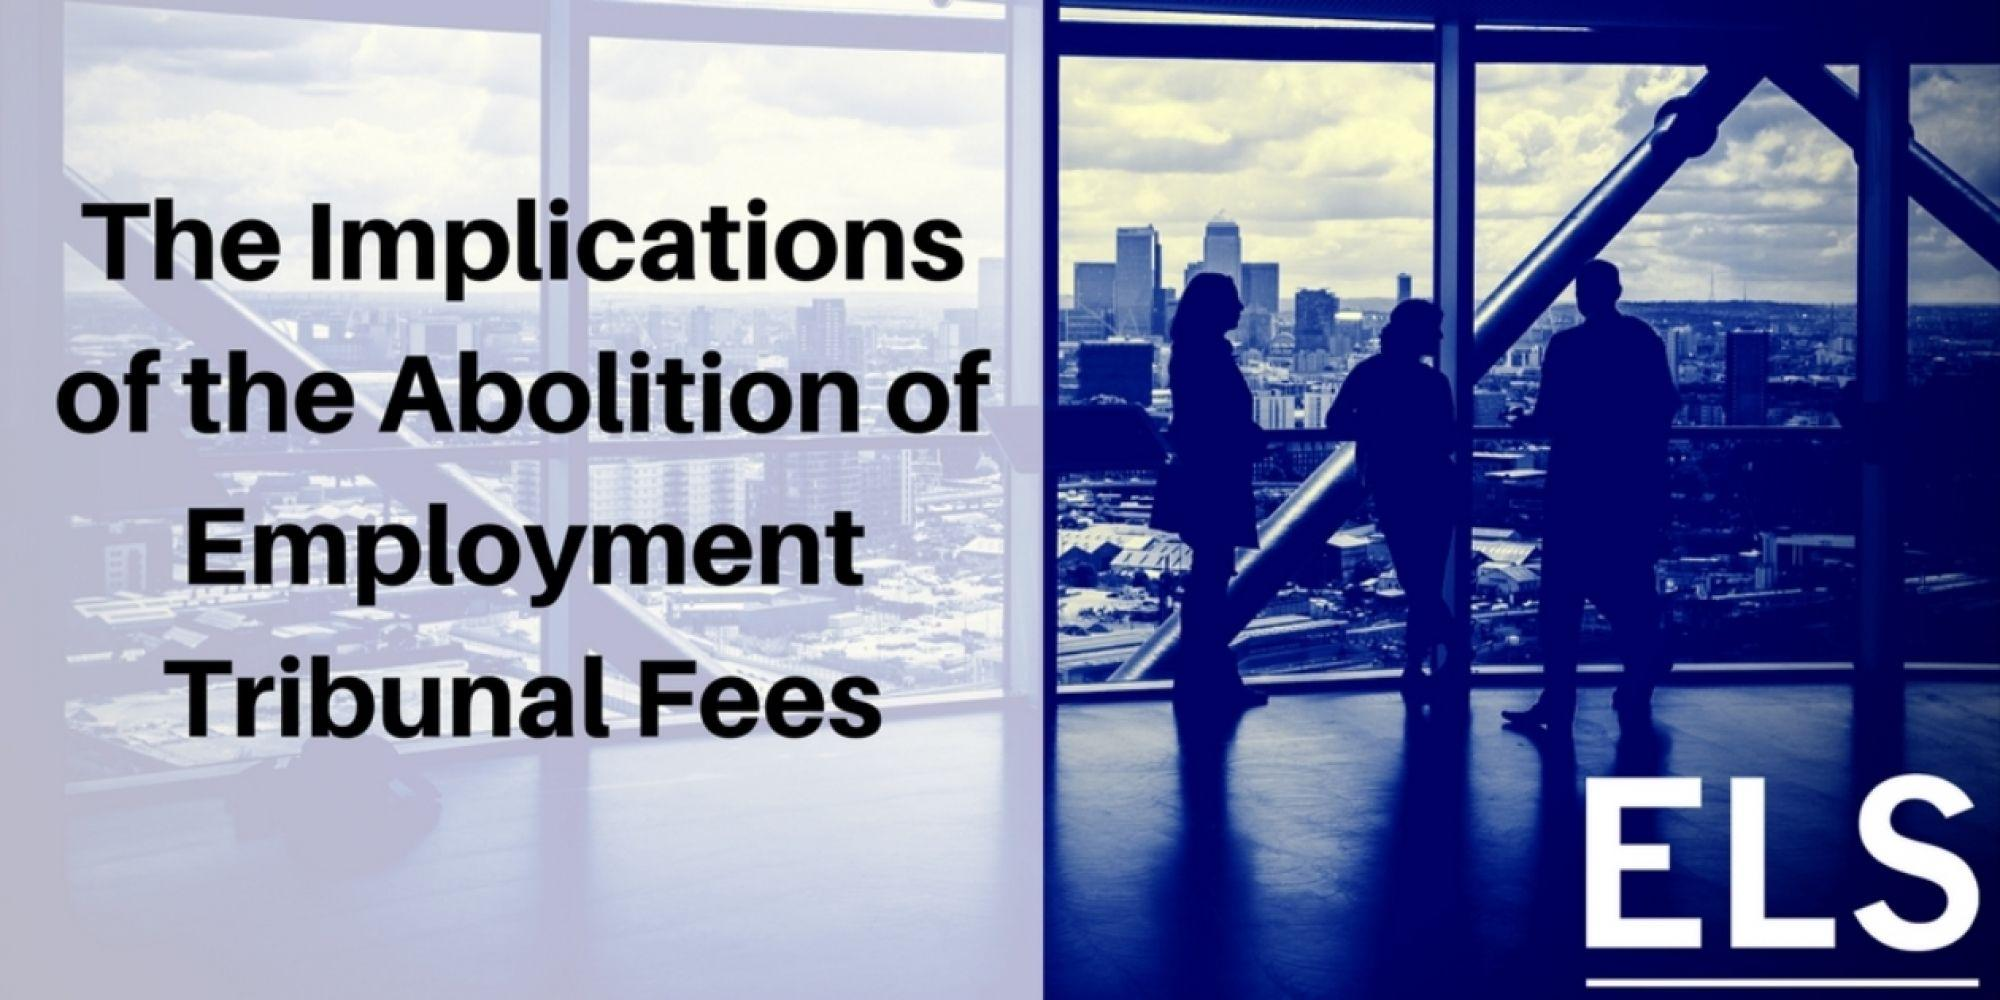 The Implications of the Abolition of Employment Tribunal Fees